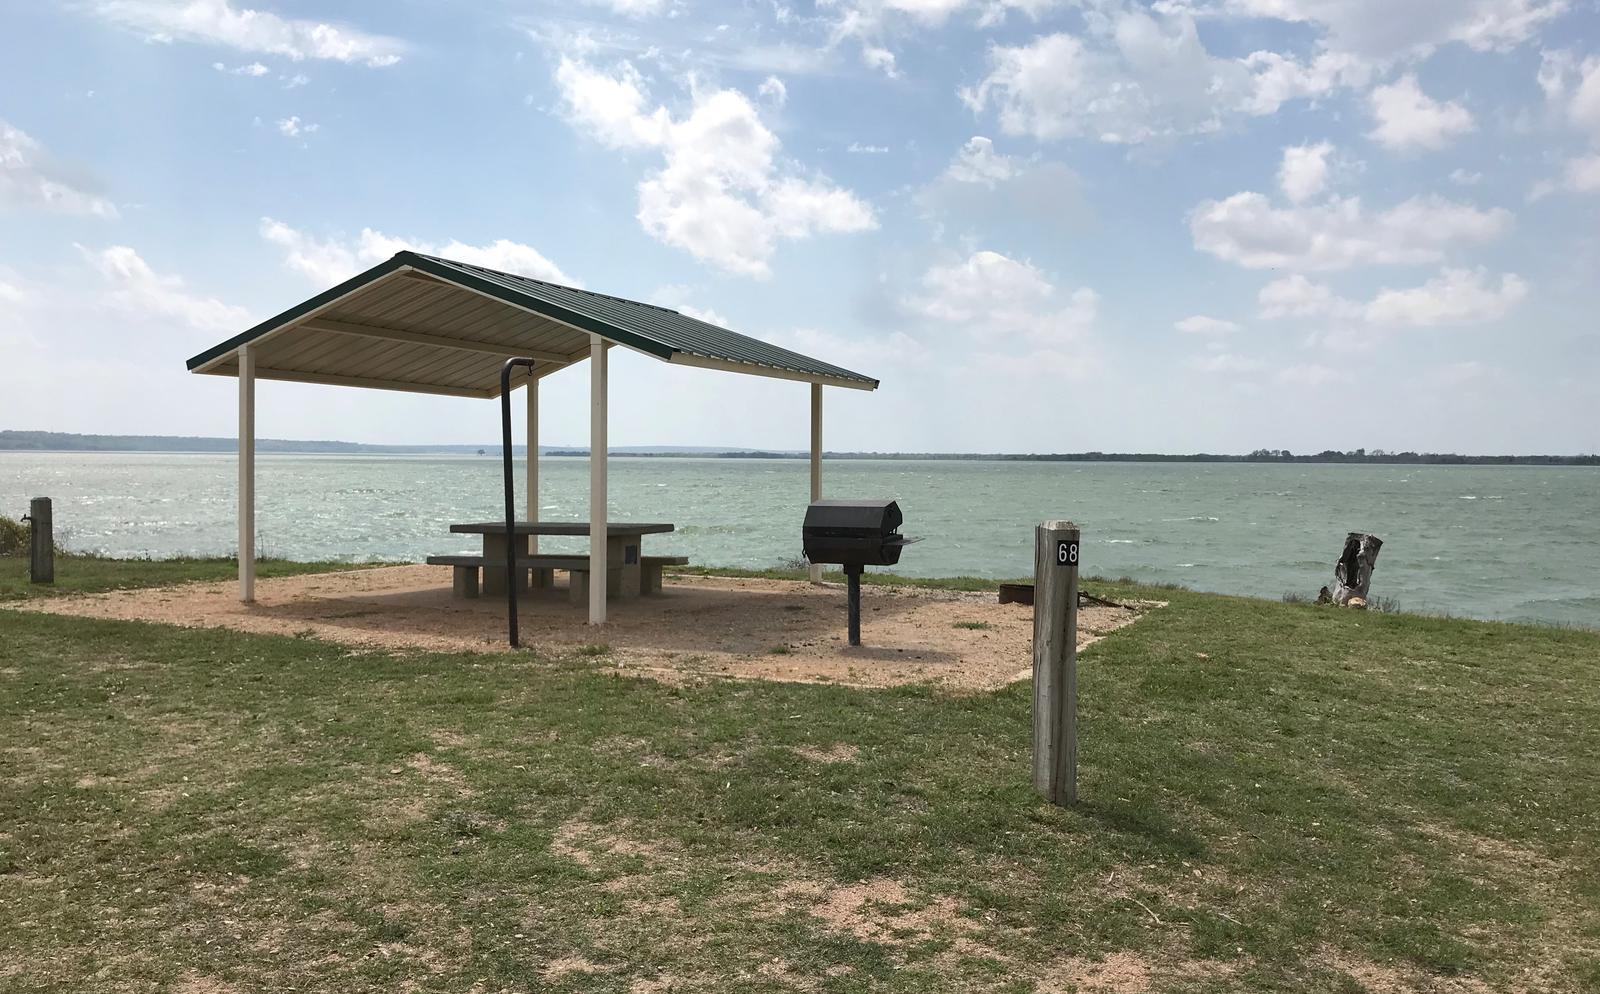 Tent site with covered picnic table, grill, and fire ring.  Site is located very close to shoreline of Waco Lake